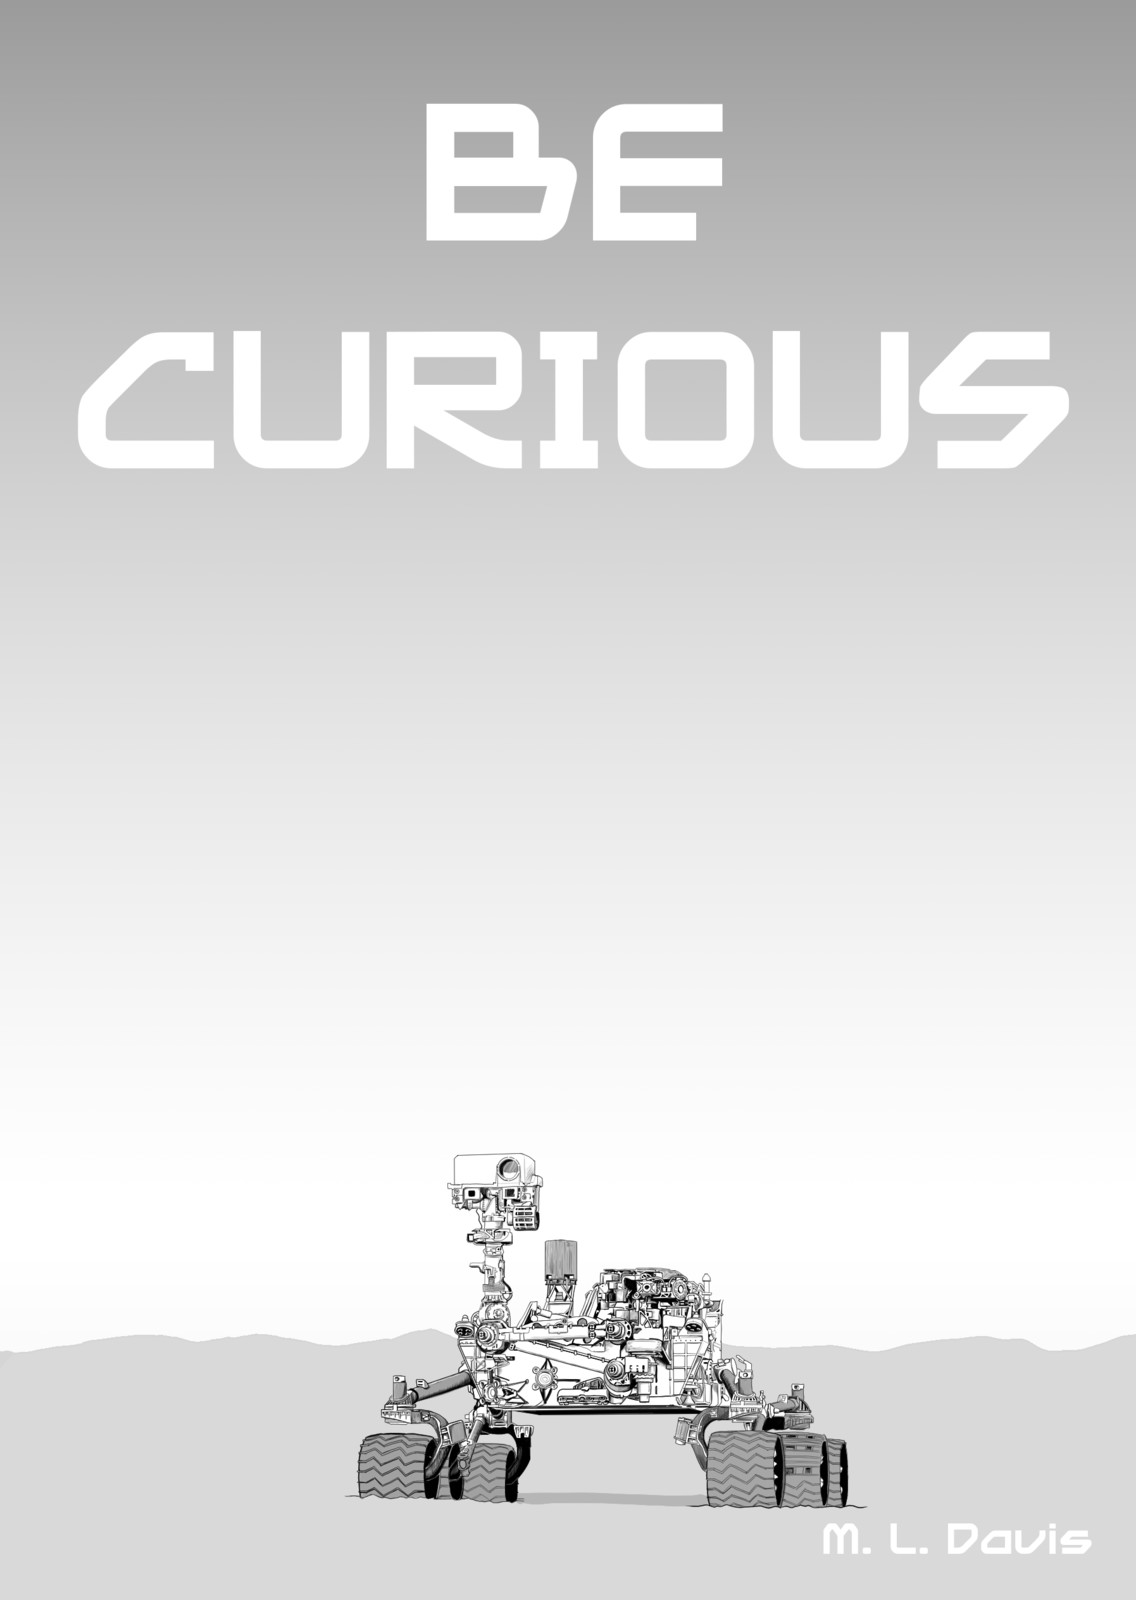 Cover, the Curiosity rover on the surface of mars.